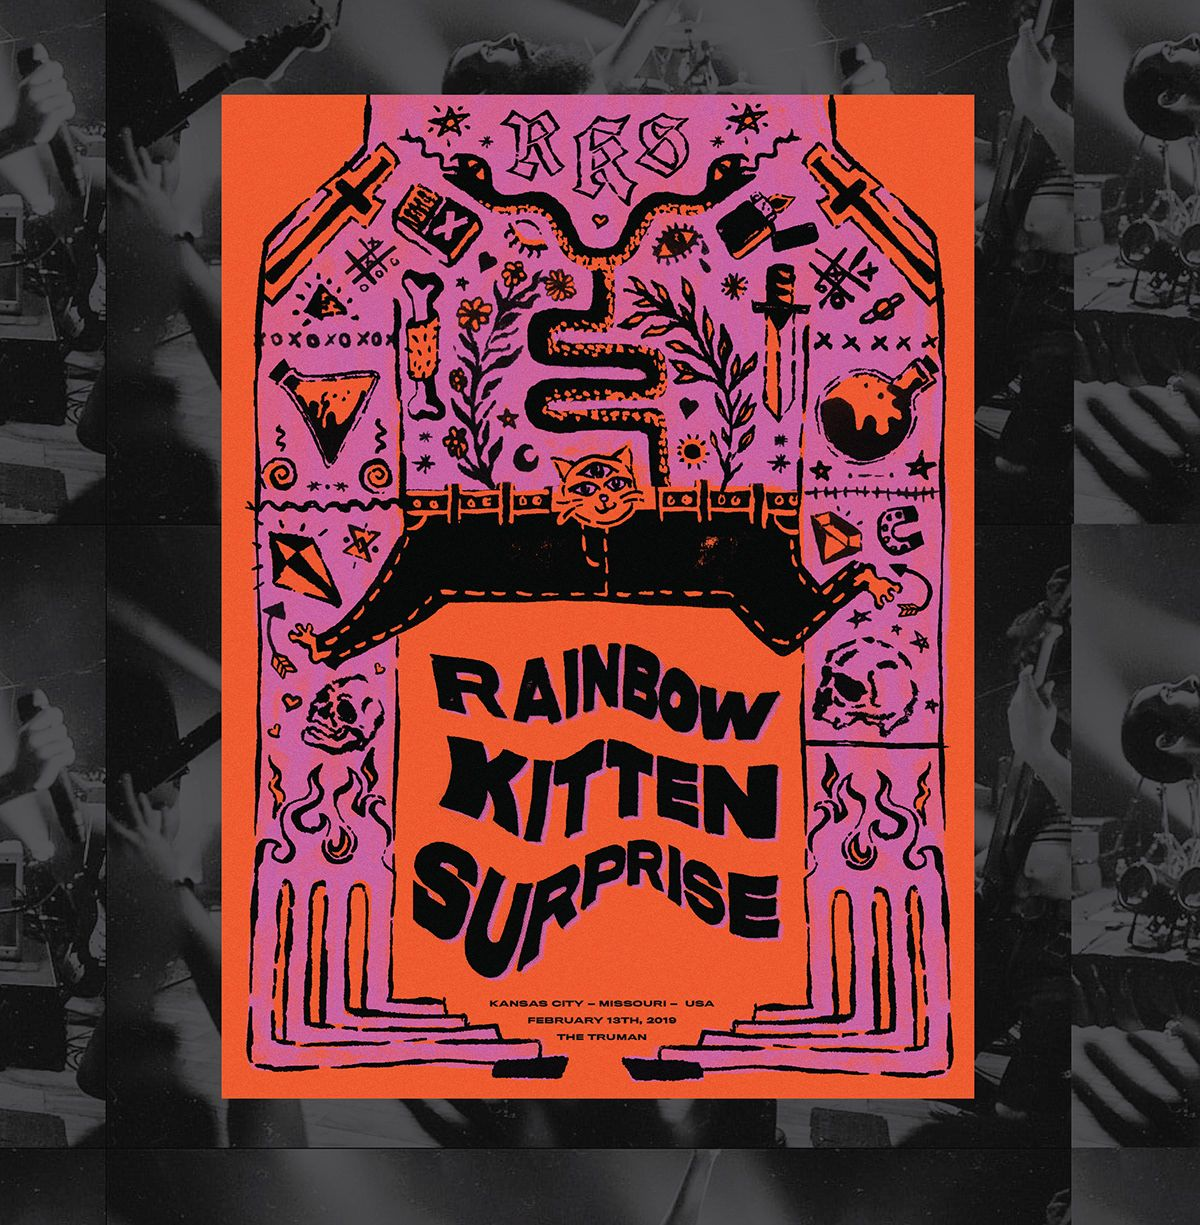 Rainbow Kitten Surprise Gig Poster On Behance Rainbow Kittens Rainbow Kitten Surprise Kitten Surprise